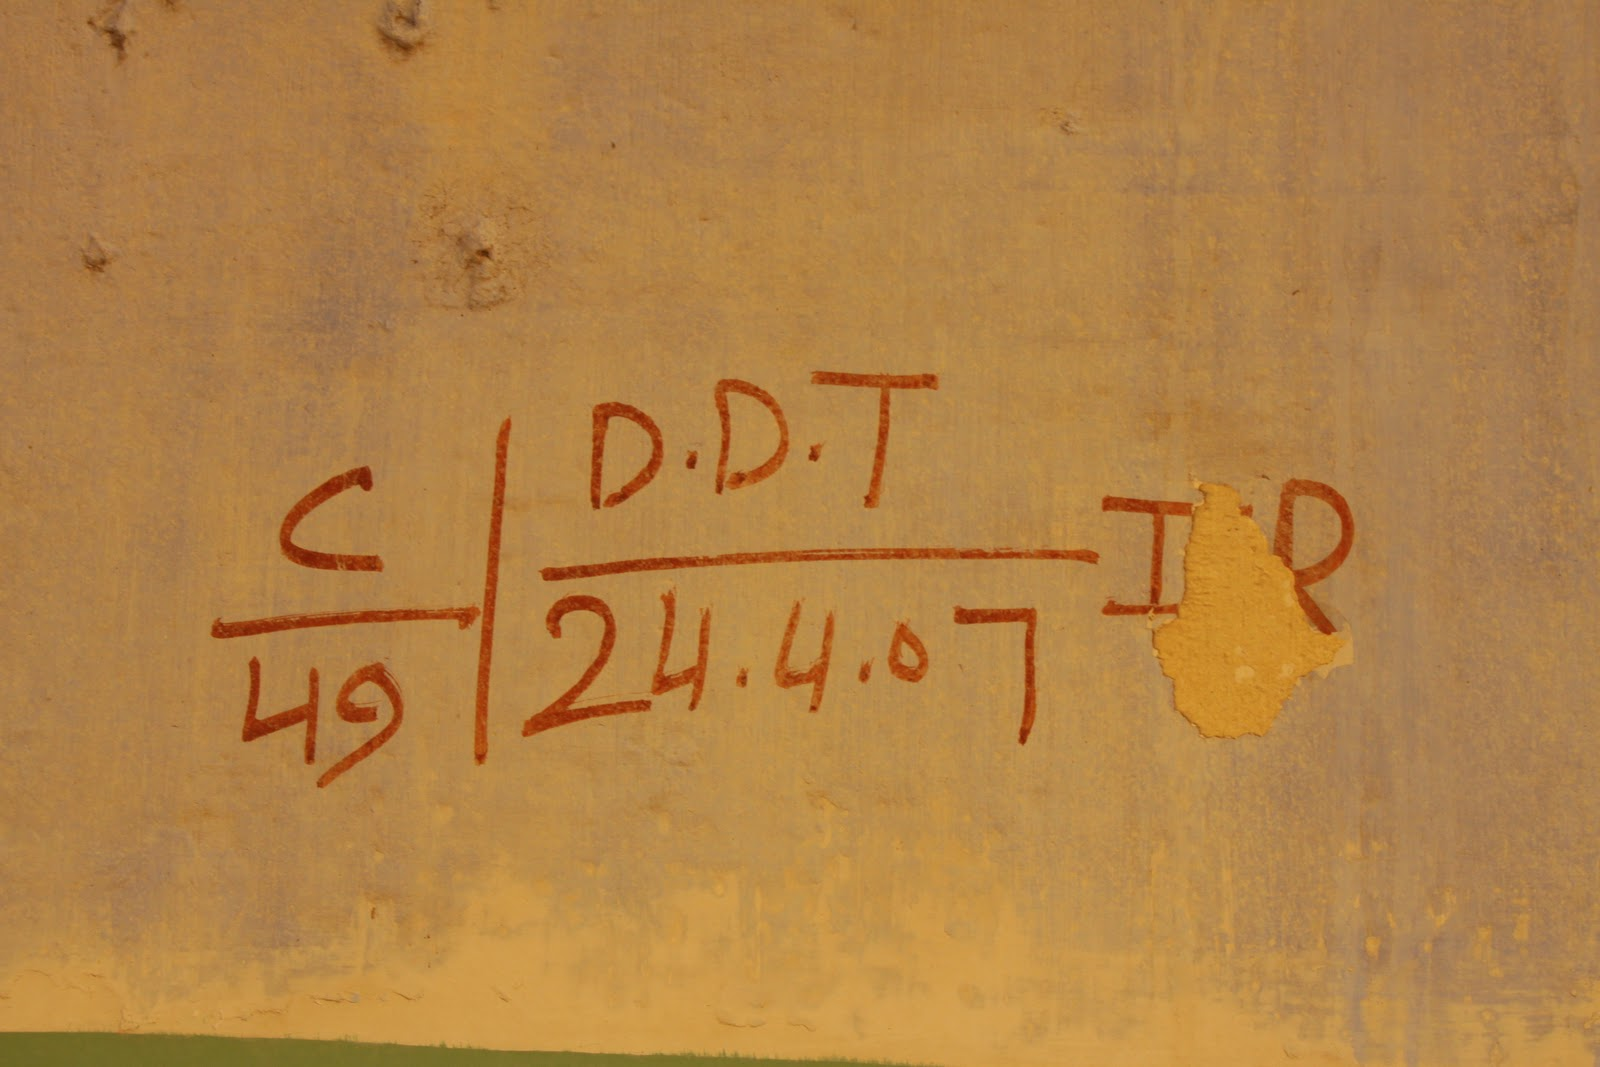 DDT-Sprayed-India-Hospitals